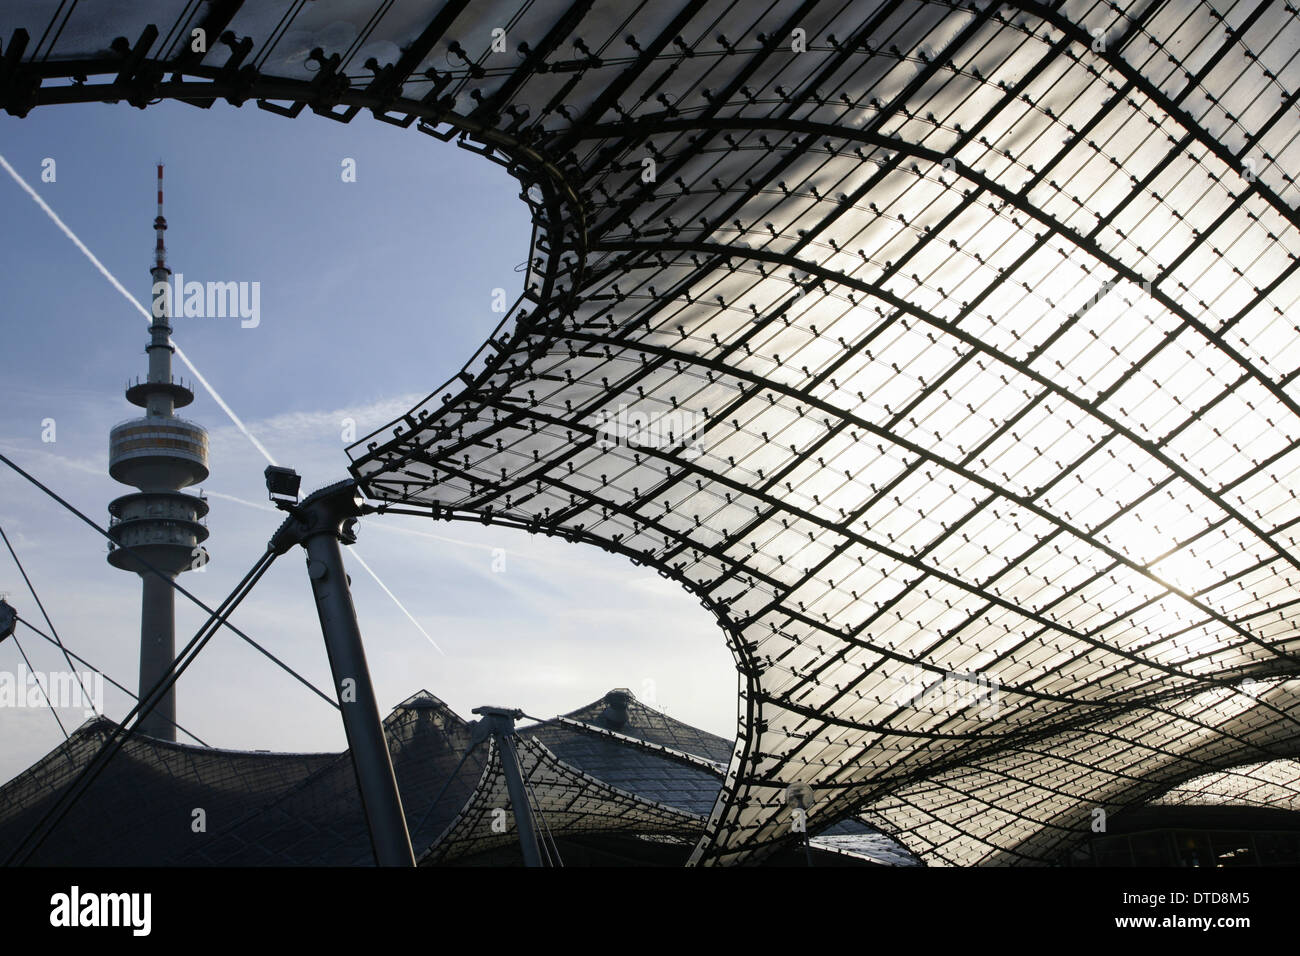 The Olympiaturm or Olympic Tower, Olympiapark, Munich, Germany. - Stock Image